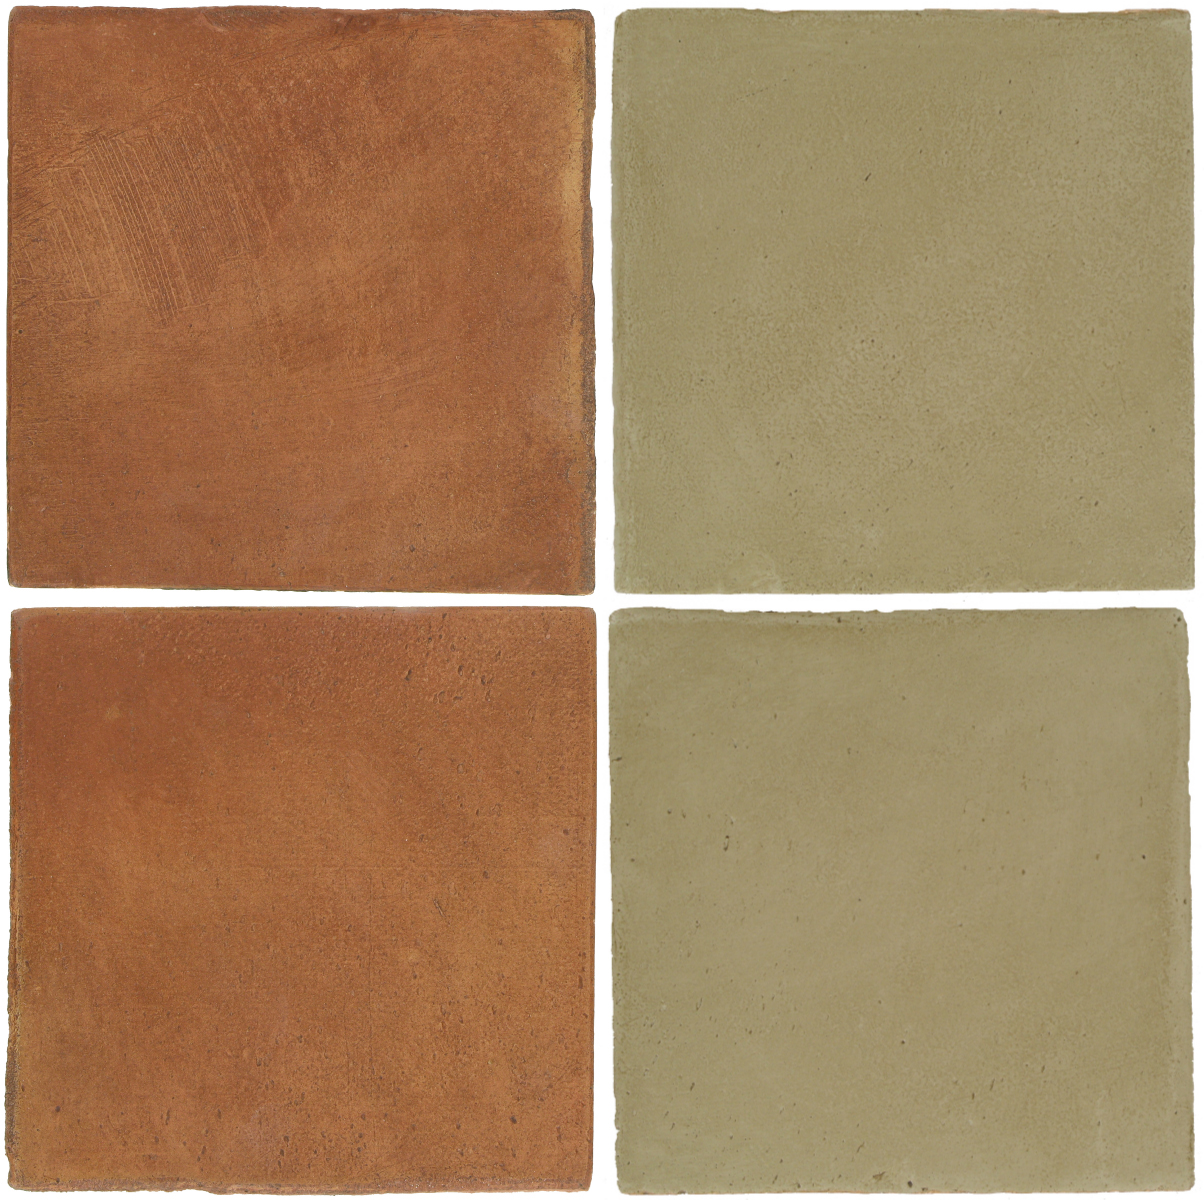 Pedralbes Antique Terracotta  2 Color Combinations  OHS-PSTR Traditional + OHS-PGDW Dirty W.